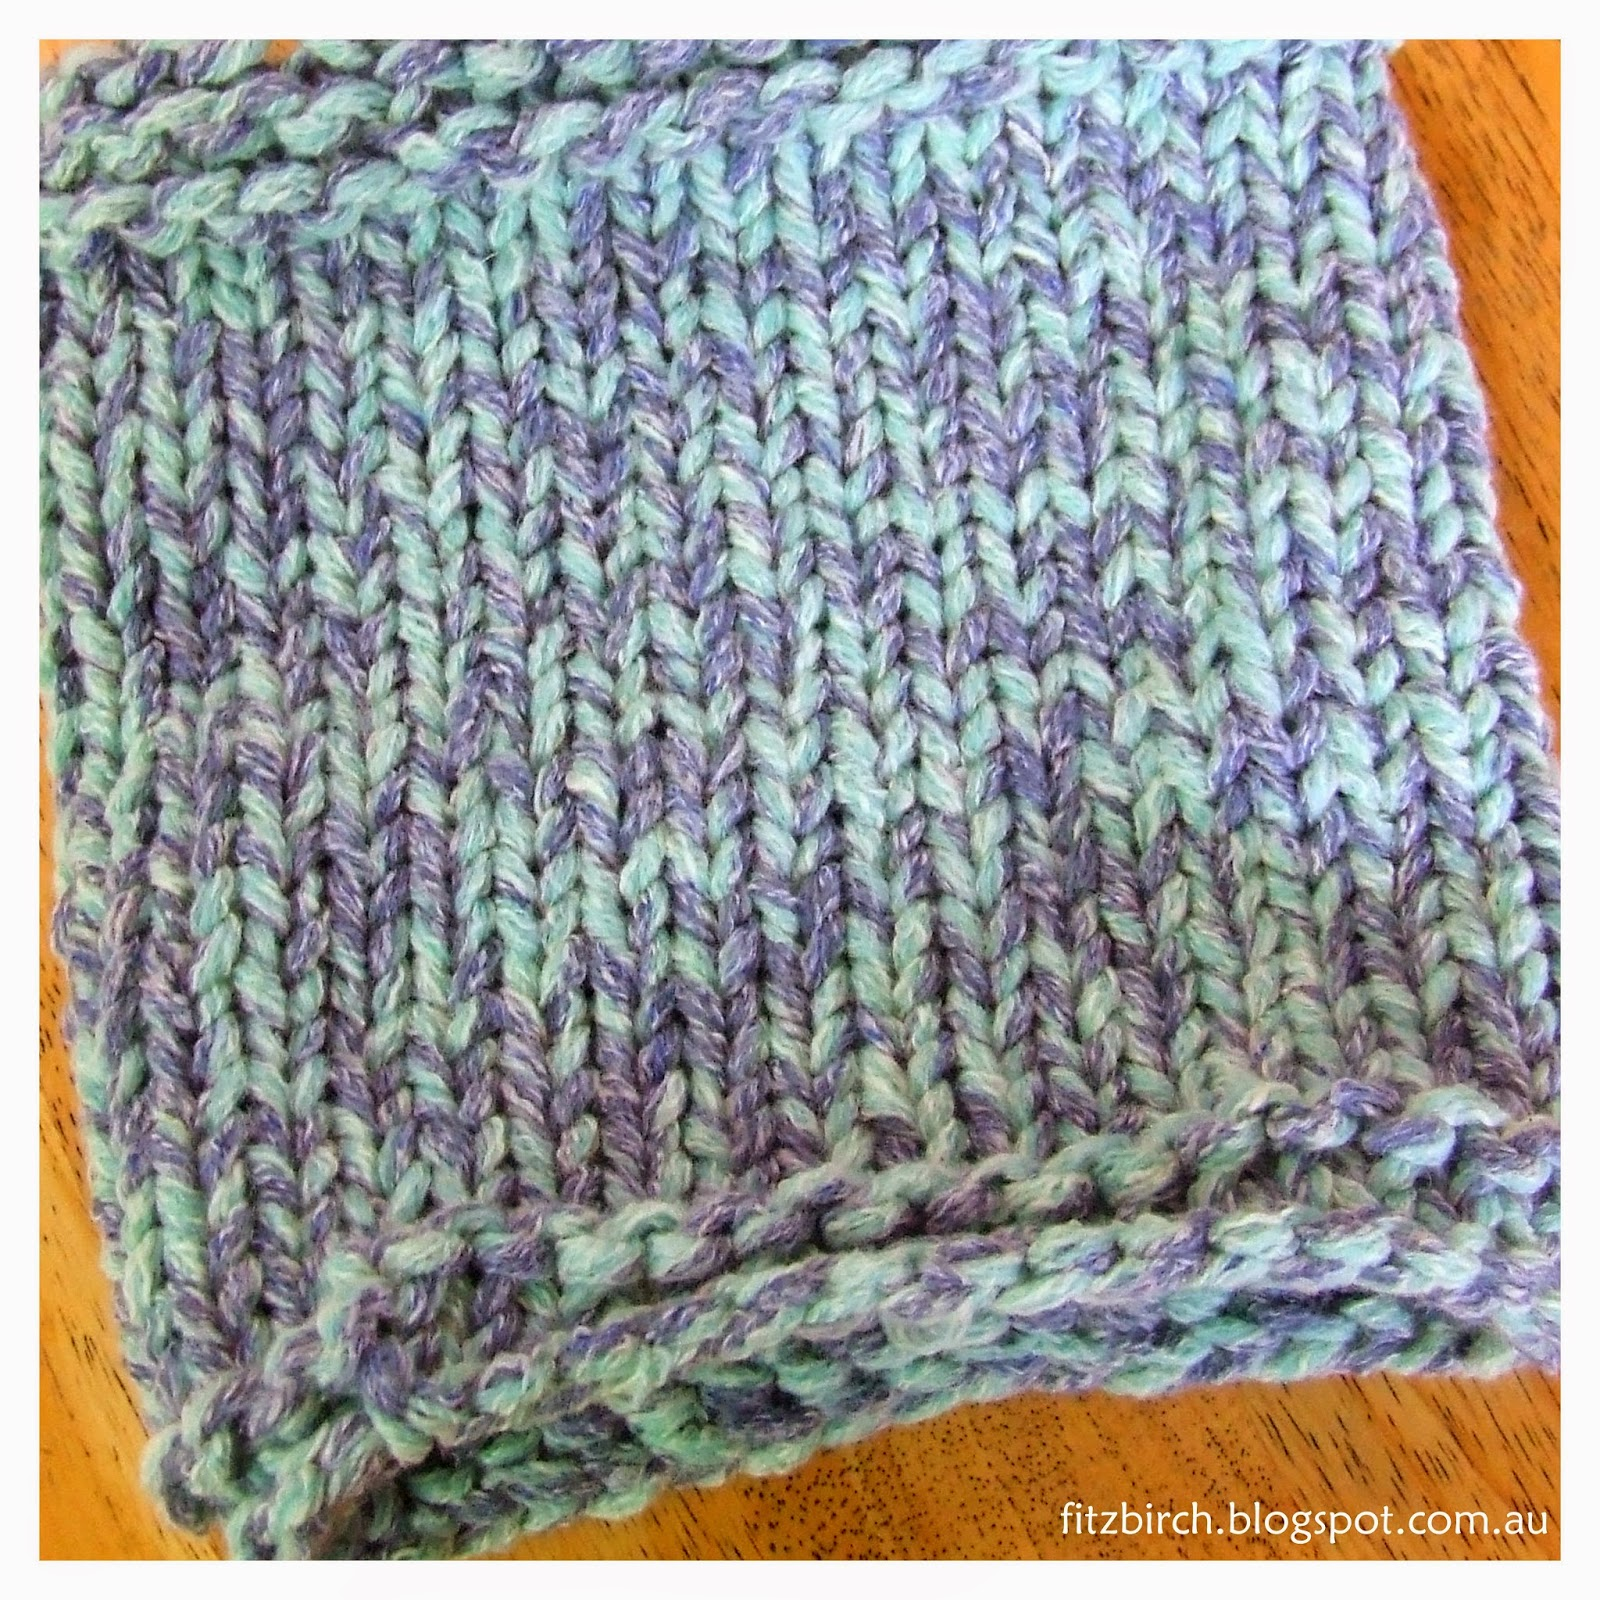 Loom Knitting Stitches Guide : If you are new to loom knitting the following tutorials are a great guide to ...